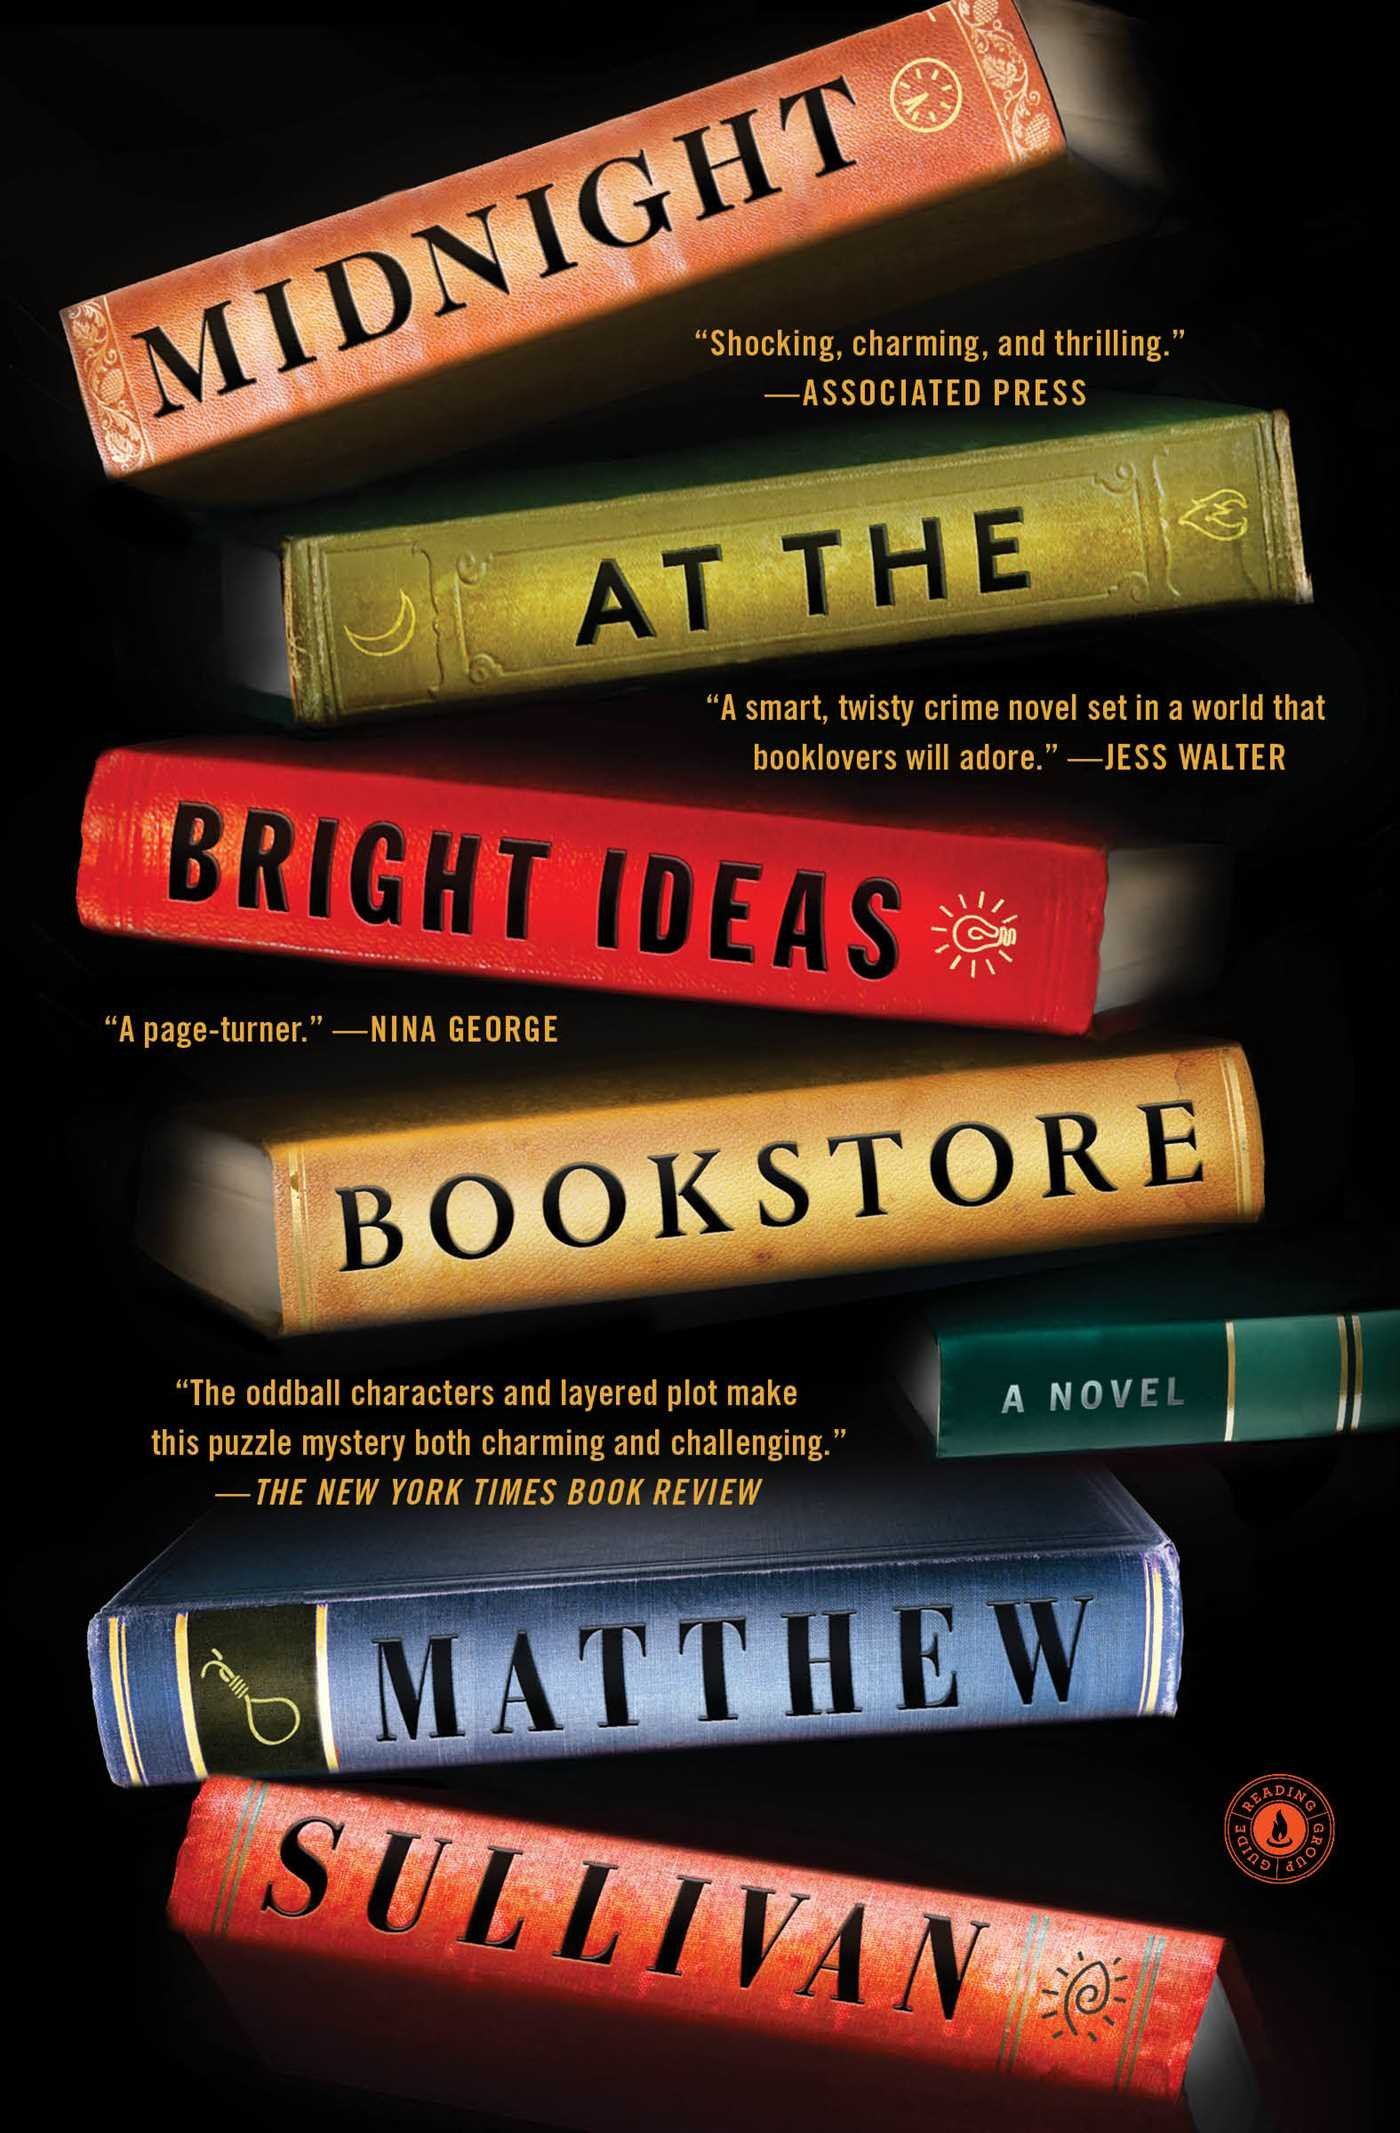 https://www.amazon.com/Midnight-Bright-Ideas-Bookstore-Novel/dp/1501116851/ref=sr_1_1?ie=UTF8&qid=1514504639&sr=8-1&keywords=midnight+at+the+bright+ideas+bookstore